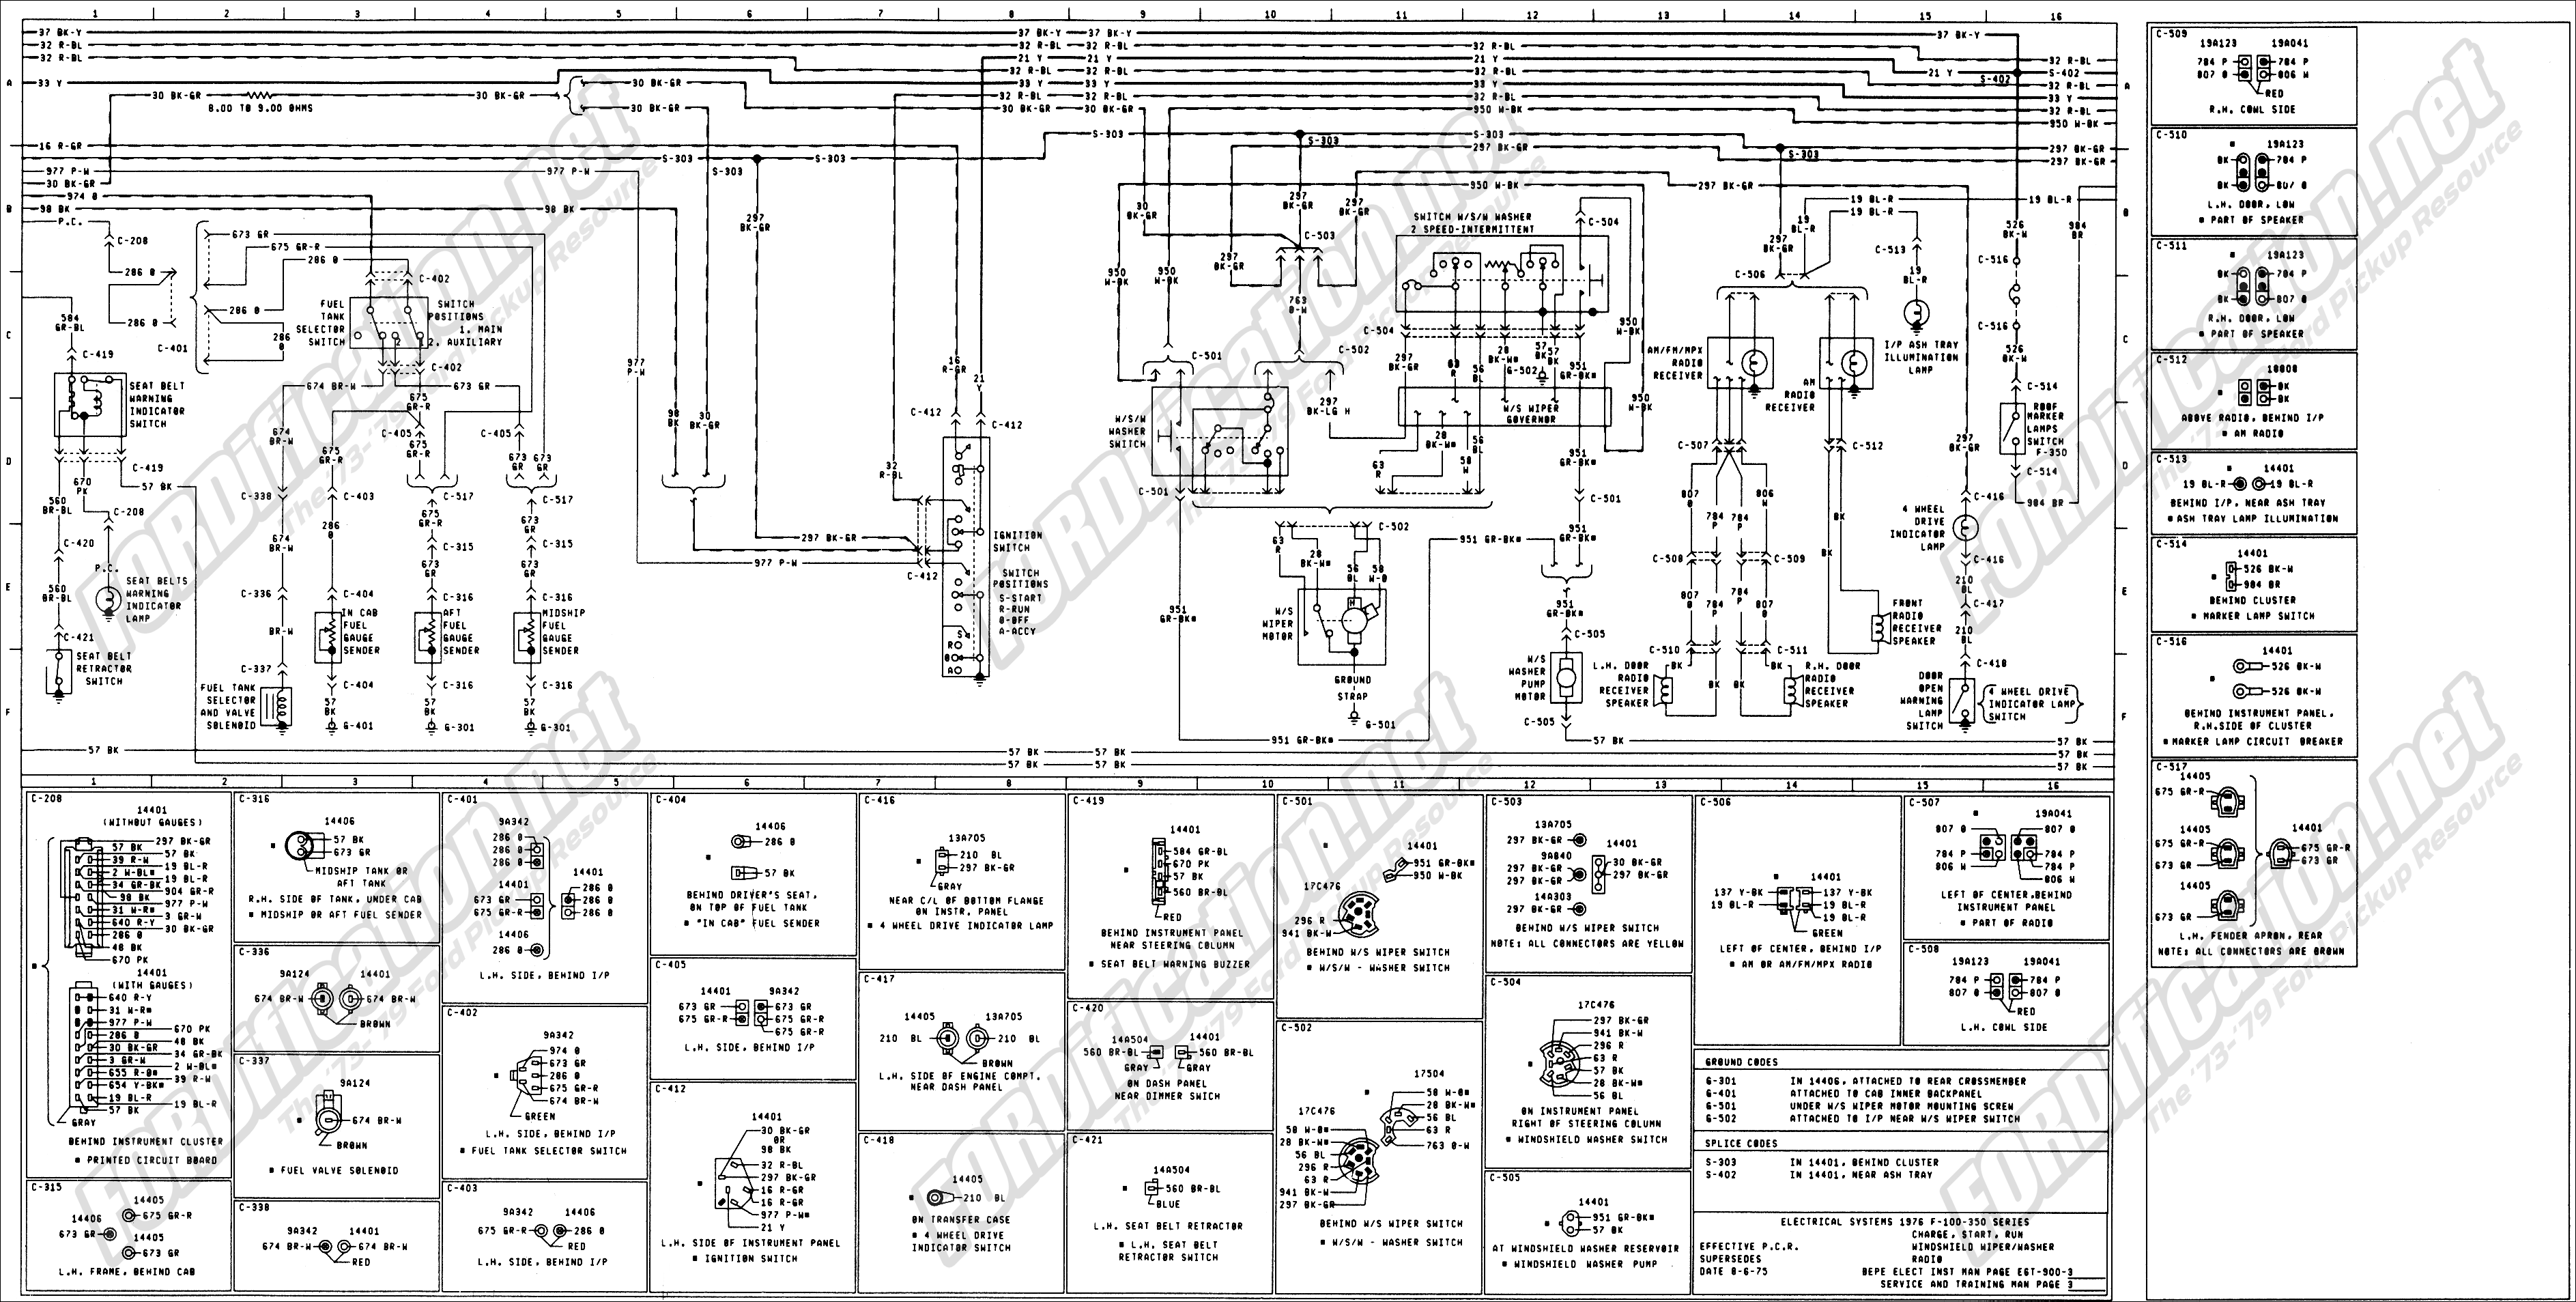 1973 1979 Ford Truck Wiring Diagrams Schematics 2002 Mercury Mountaineer Diagram